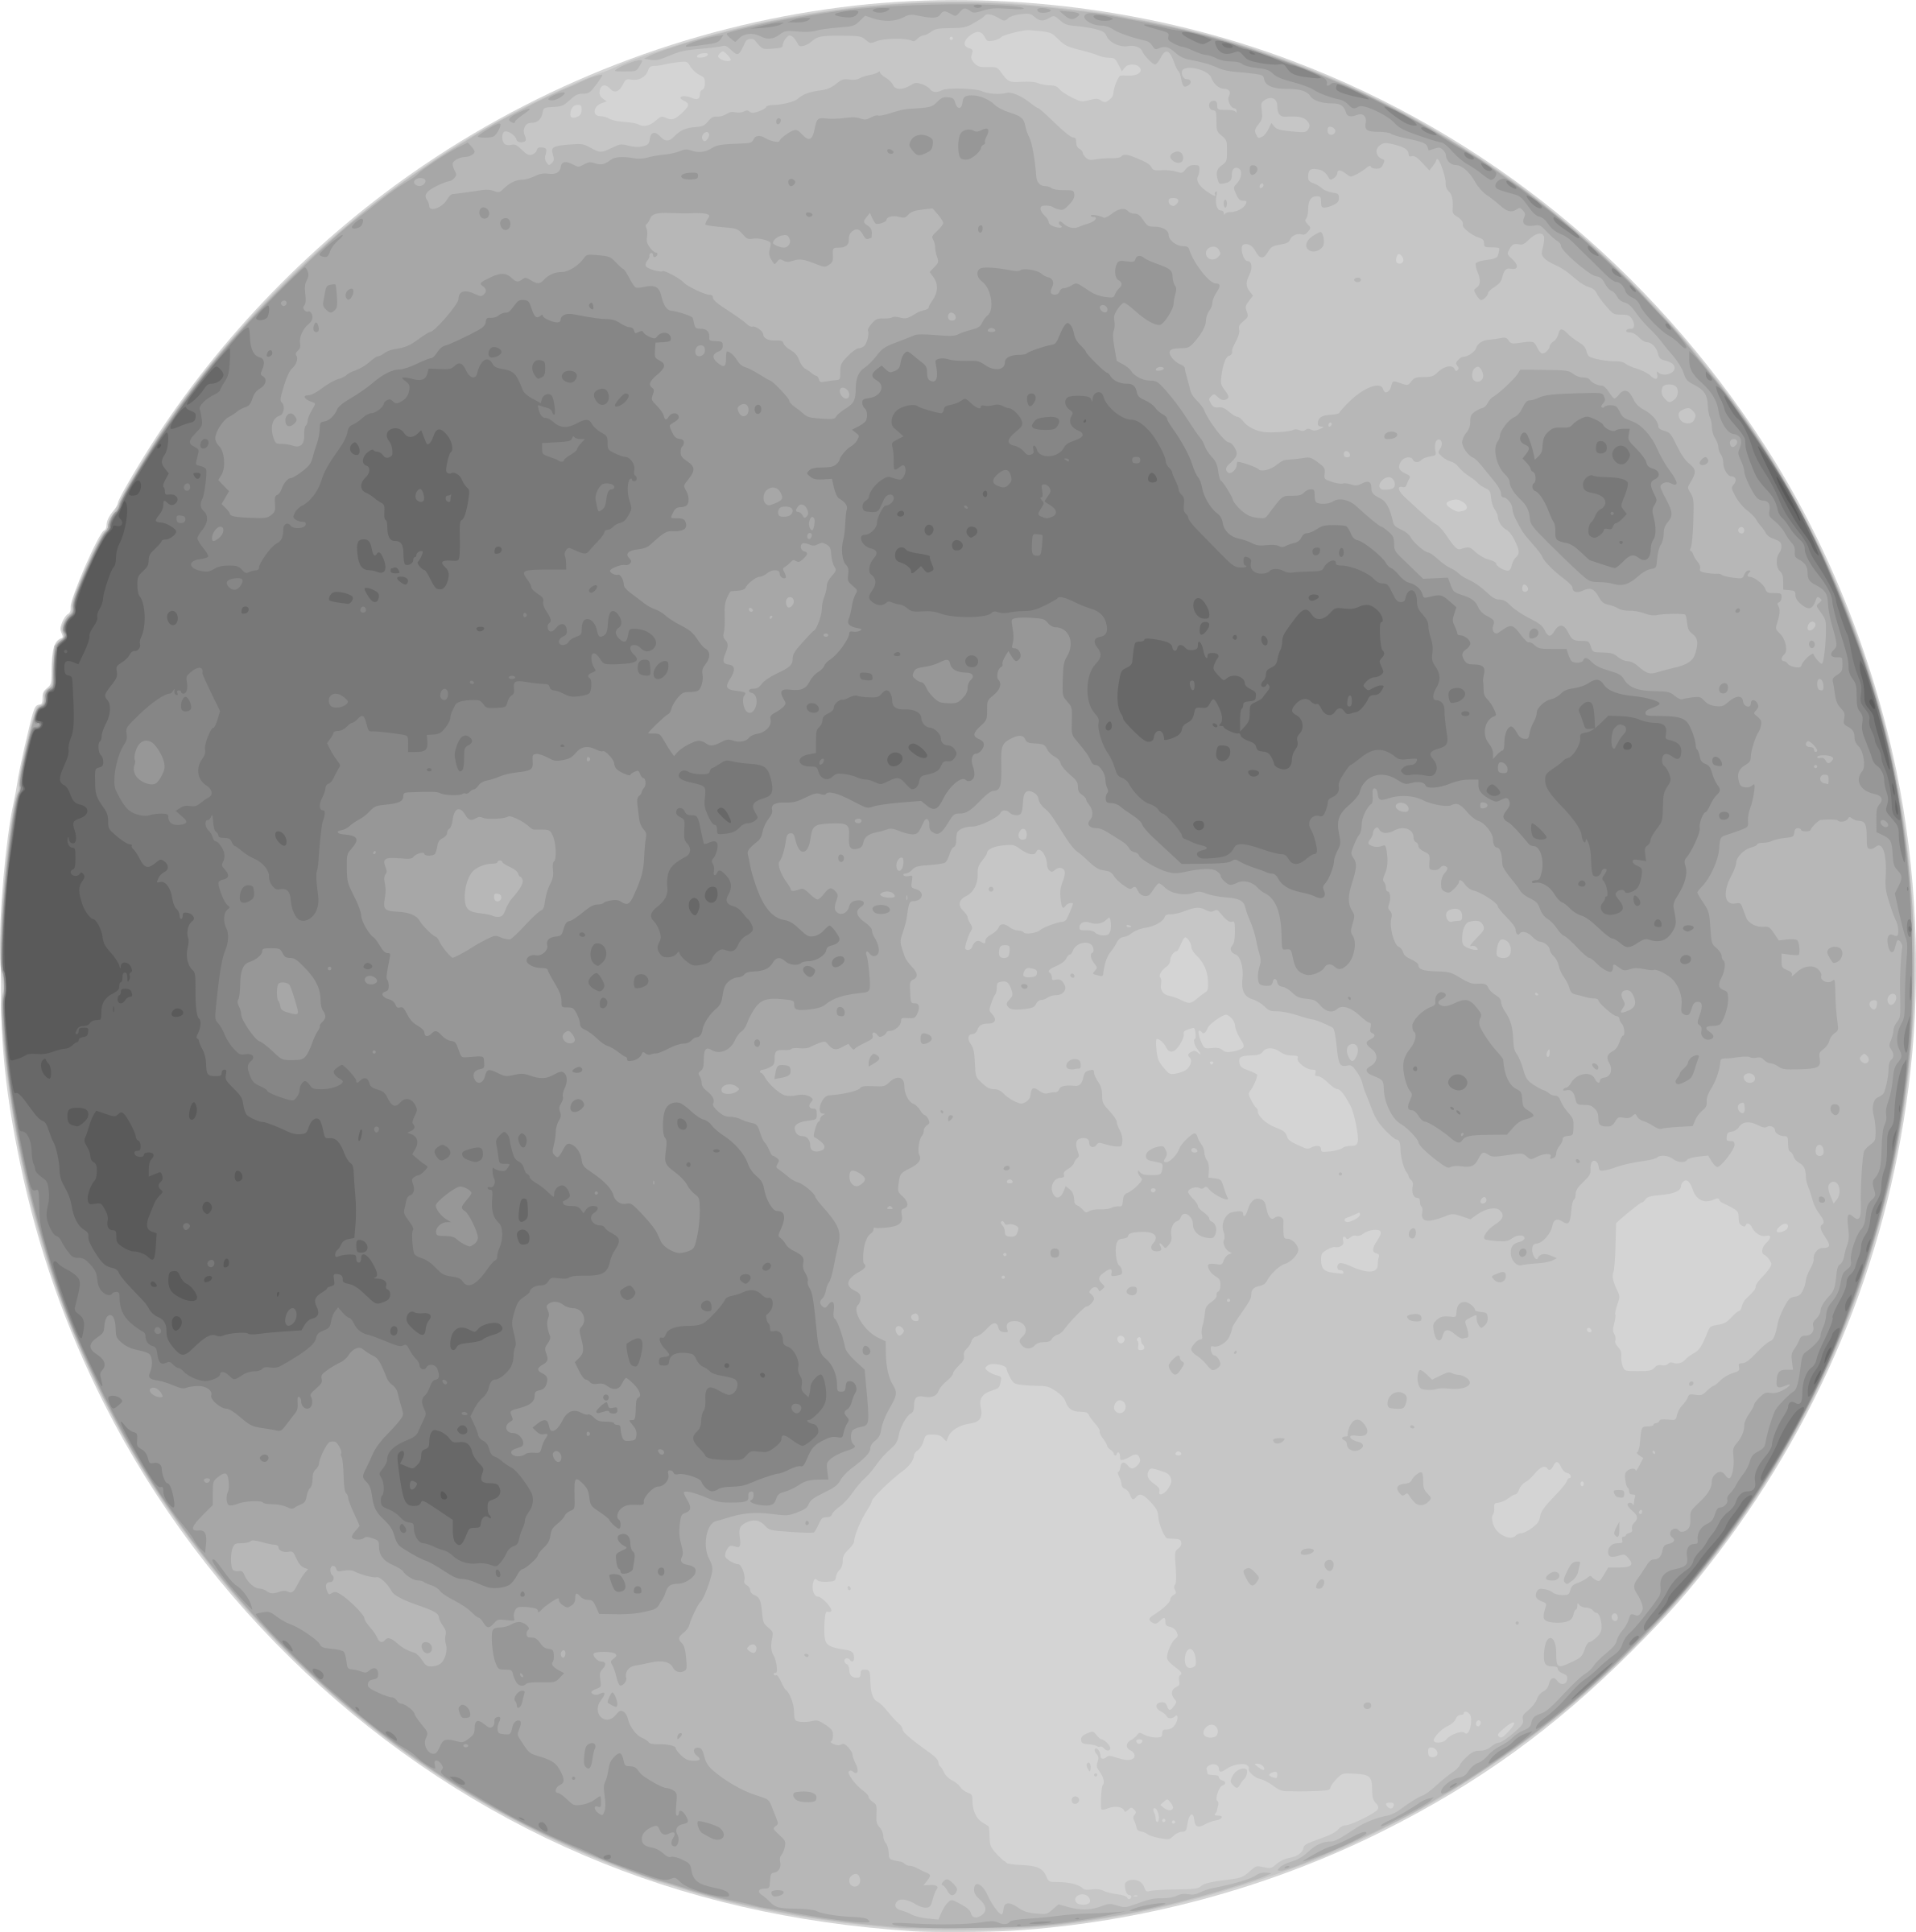 Halloween moon clipart black and white library Full Moon PNG Black And White Transparent Full Moon Black And White ... library